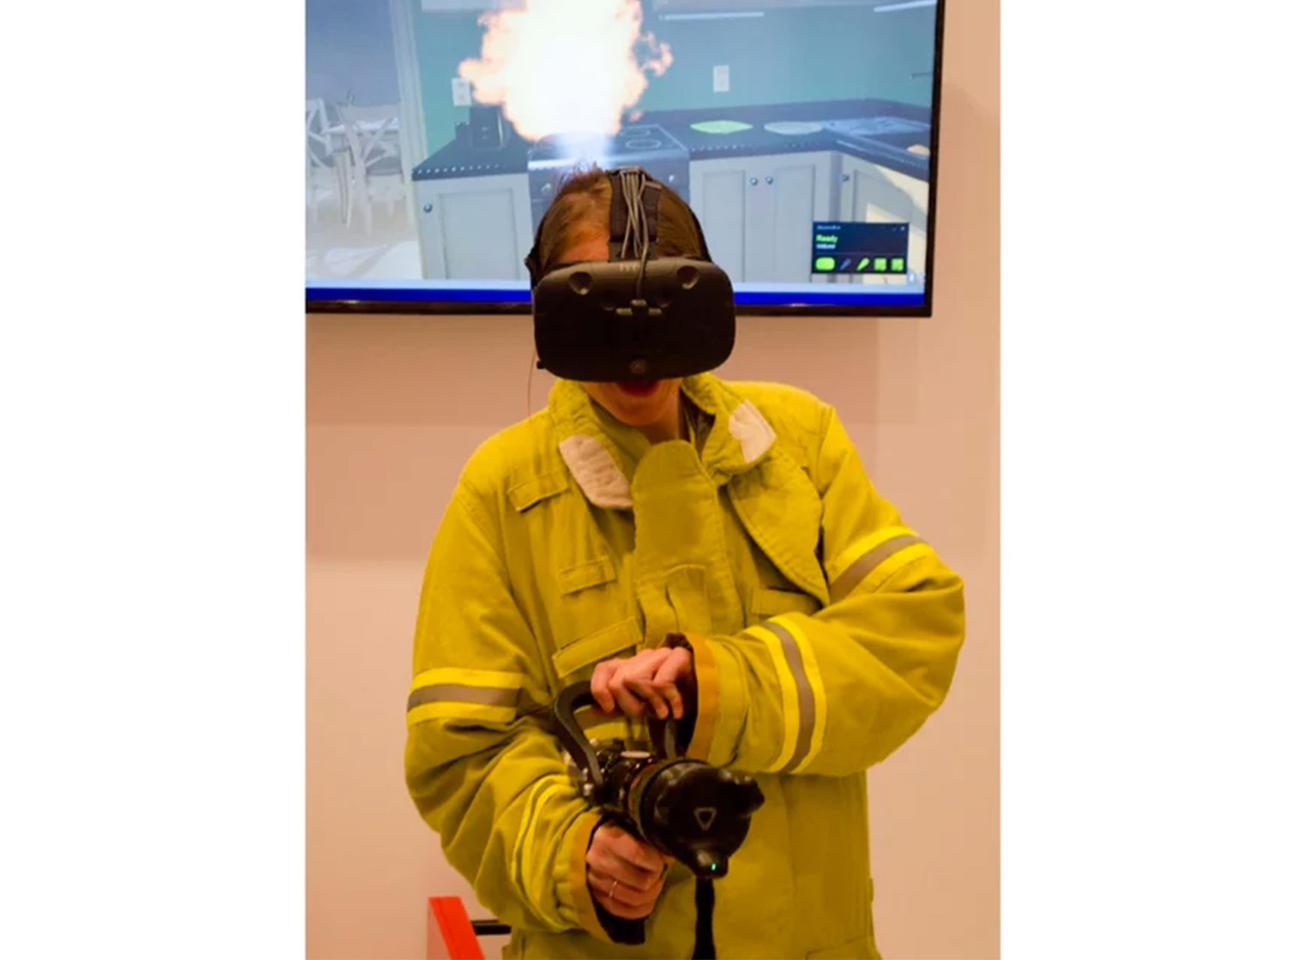 Putting the Vive Tracker to work in a firefighting training demo at CES 2017